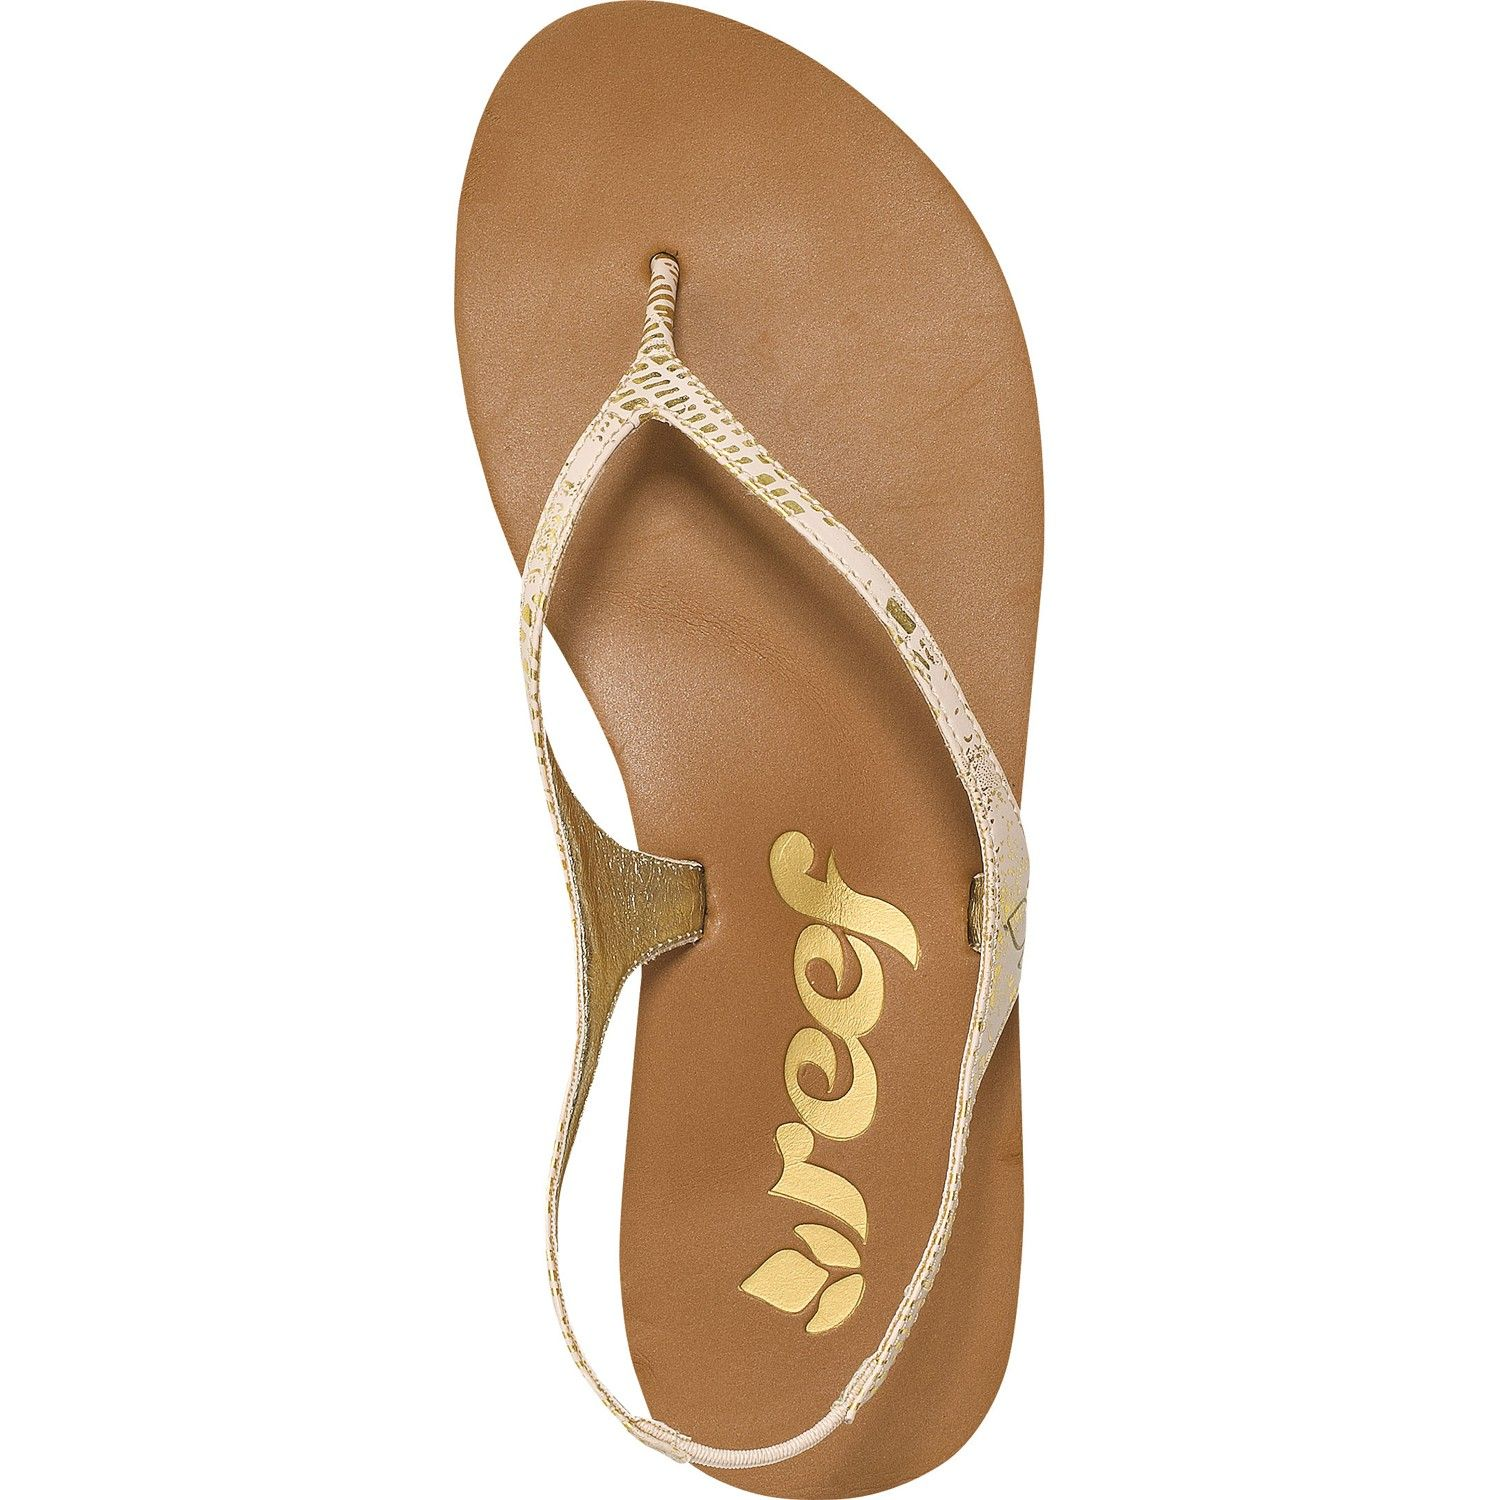 1b66165112a Reef Womens Sandals Ronday Vu Peach | Womens Footwear | Sandals ...